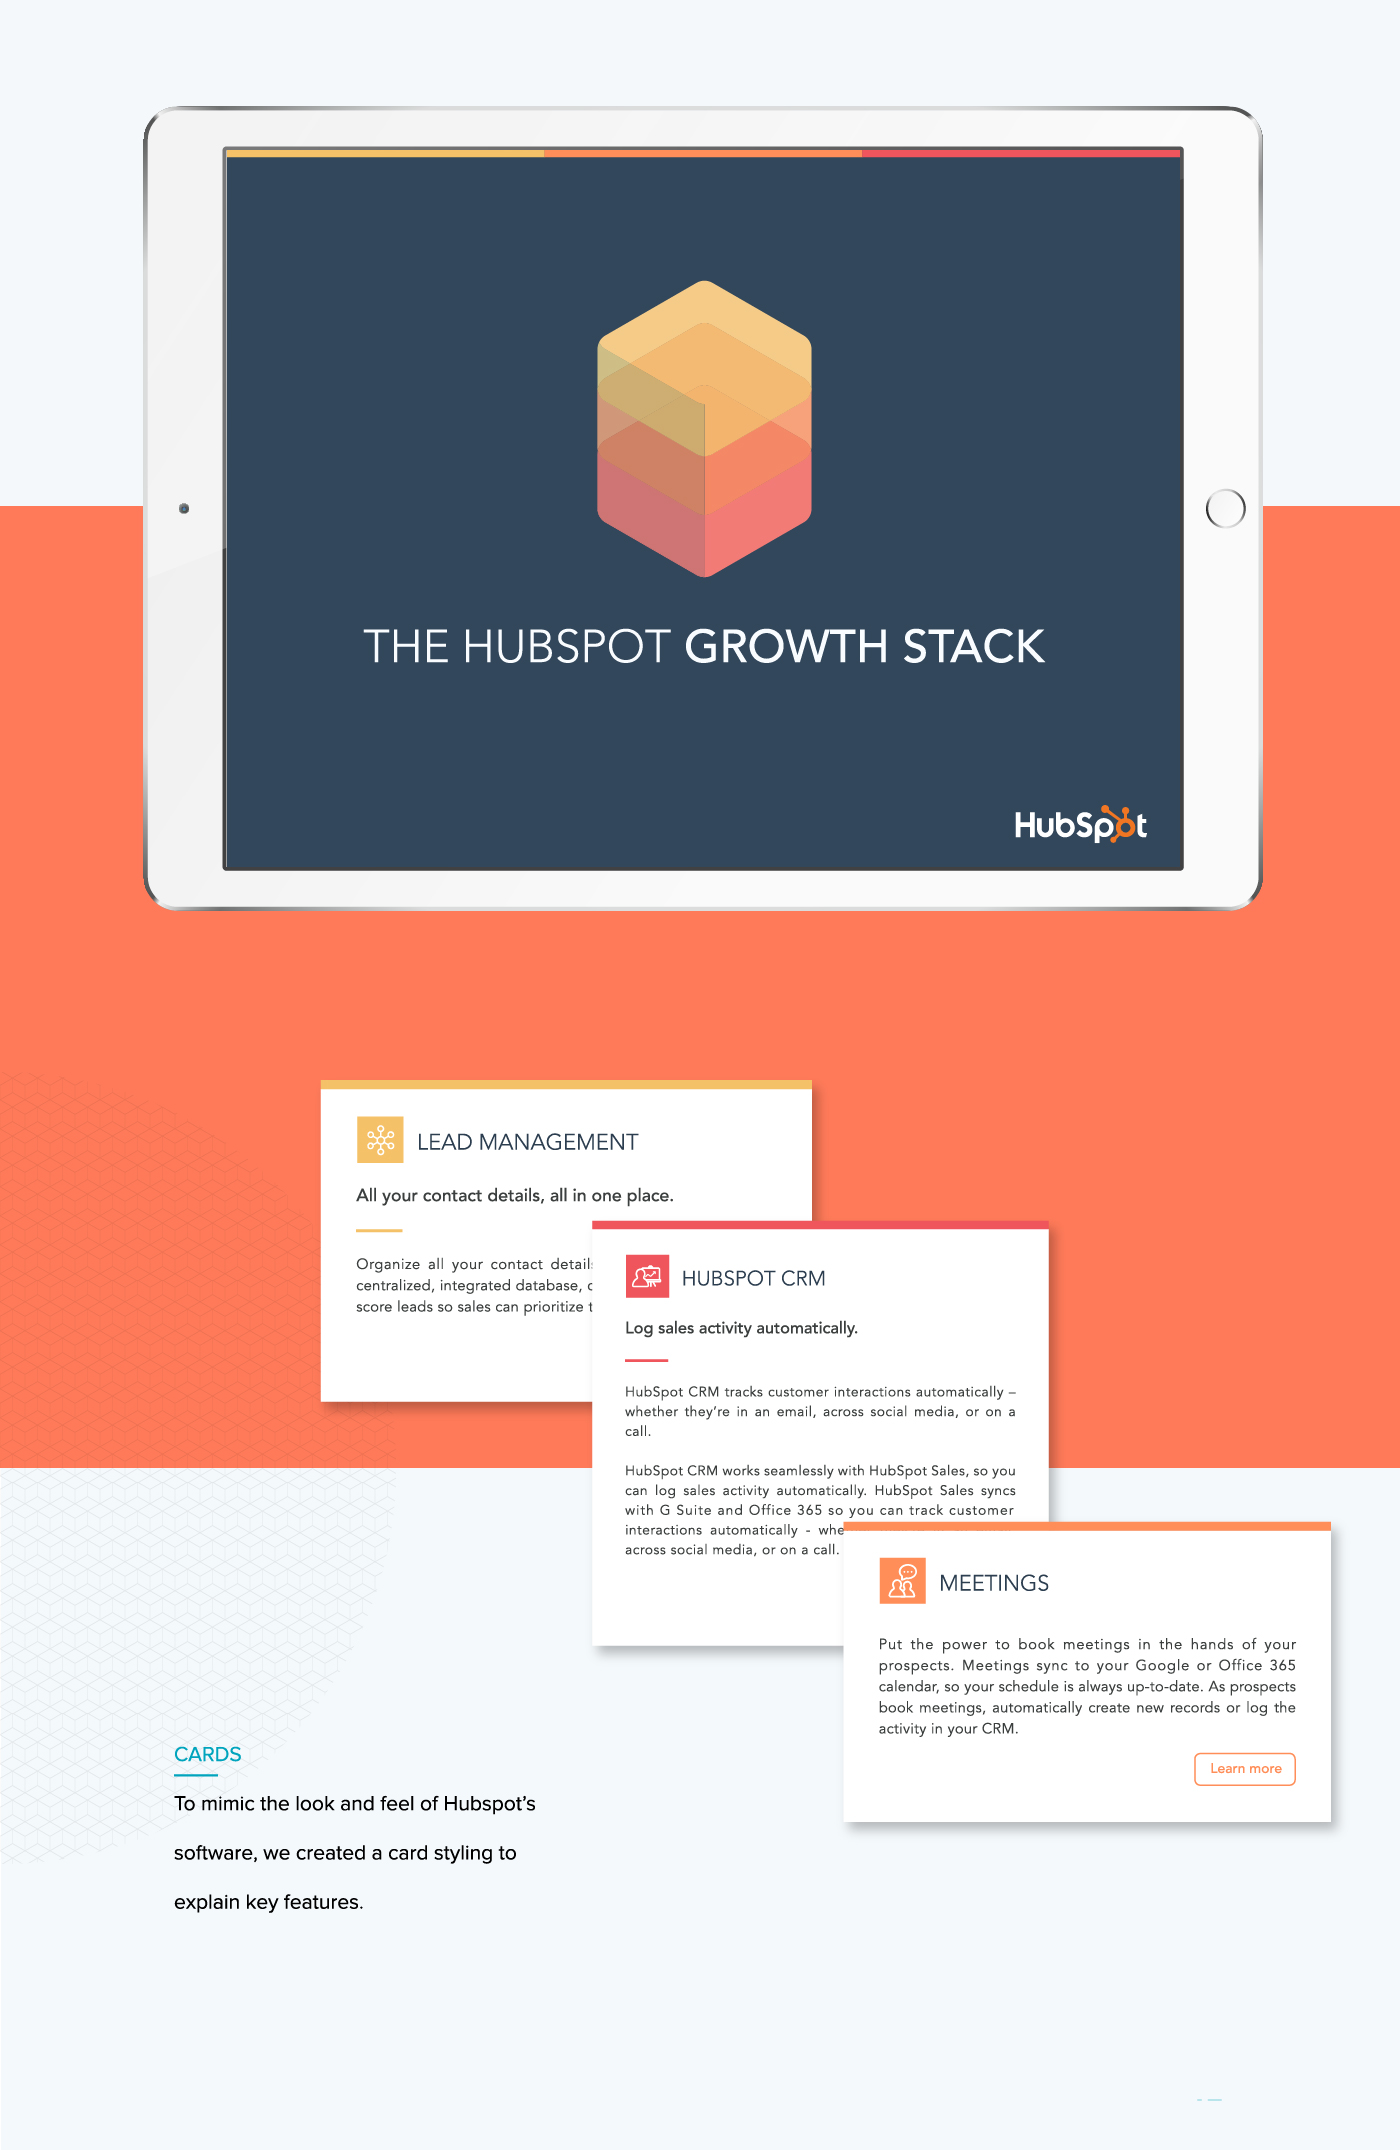 Sales Collateral Design for HubSpot | Form + Function Portfolio